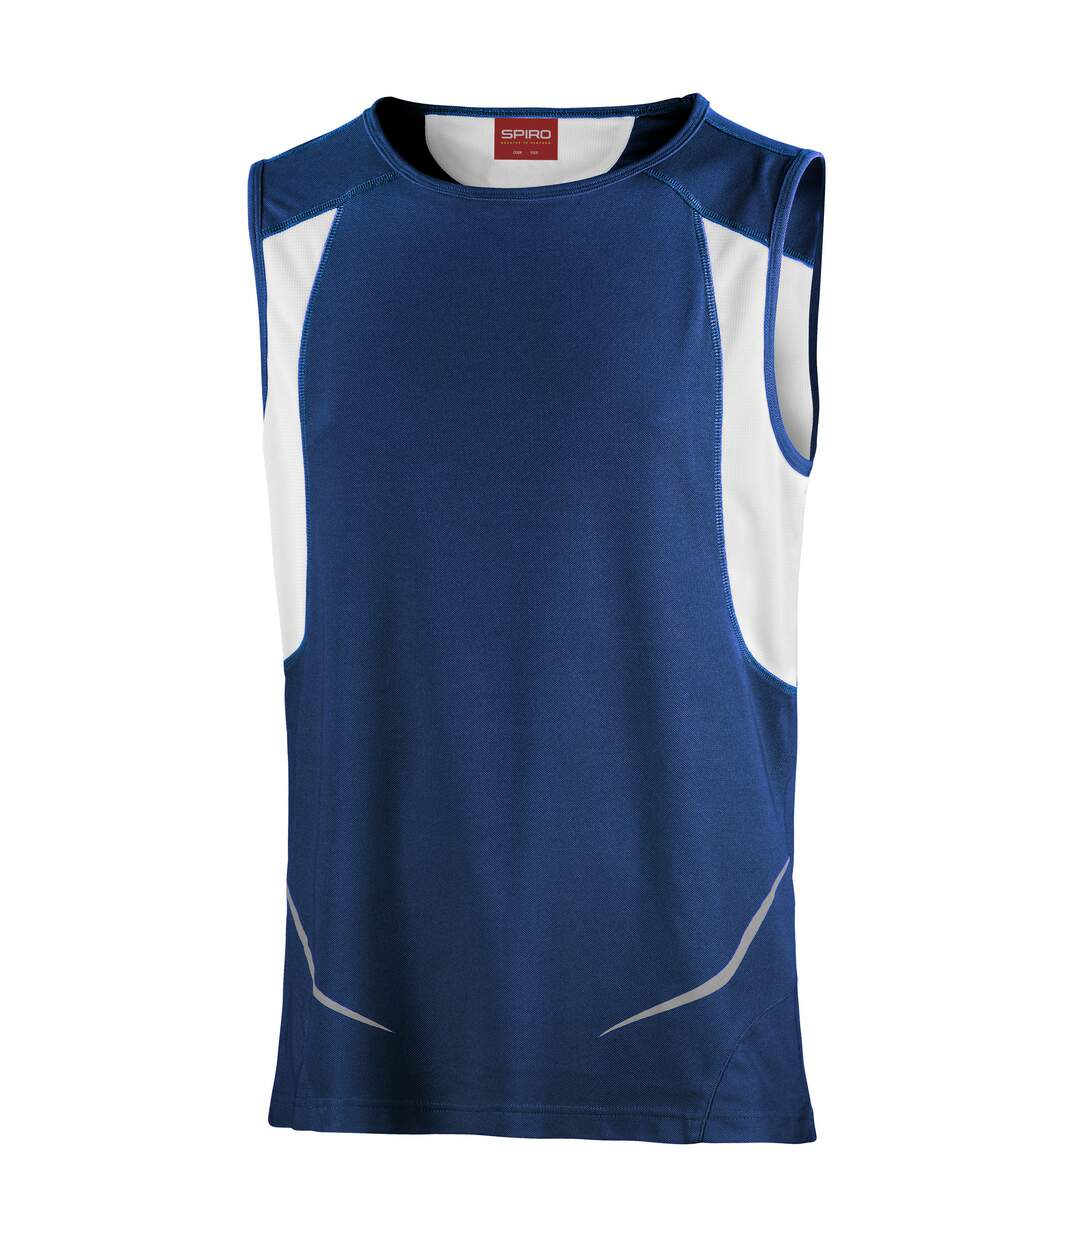 Spiro Mens Sports Athletic Vest Top (Navy/White) - UTRW1480